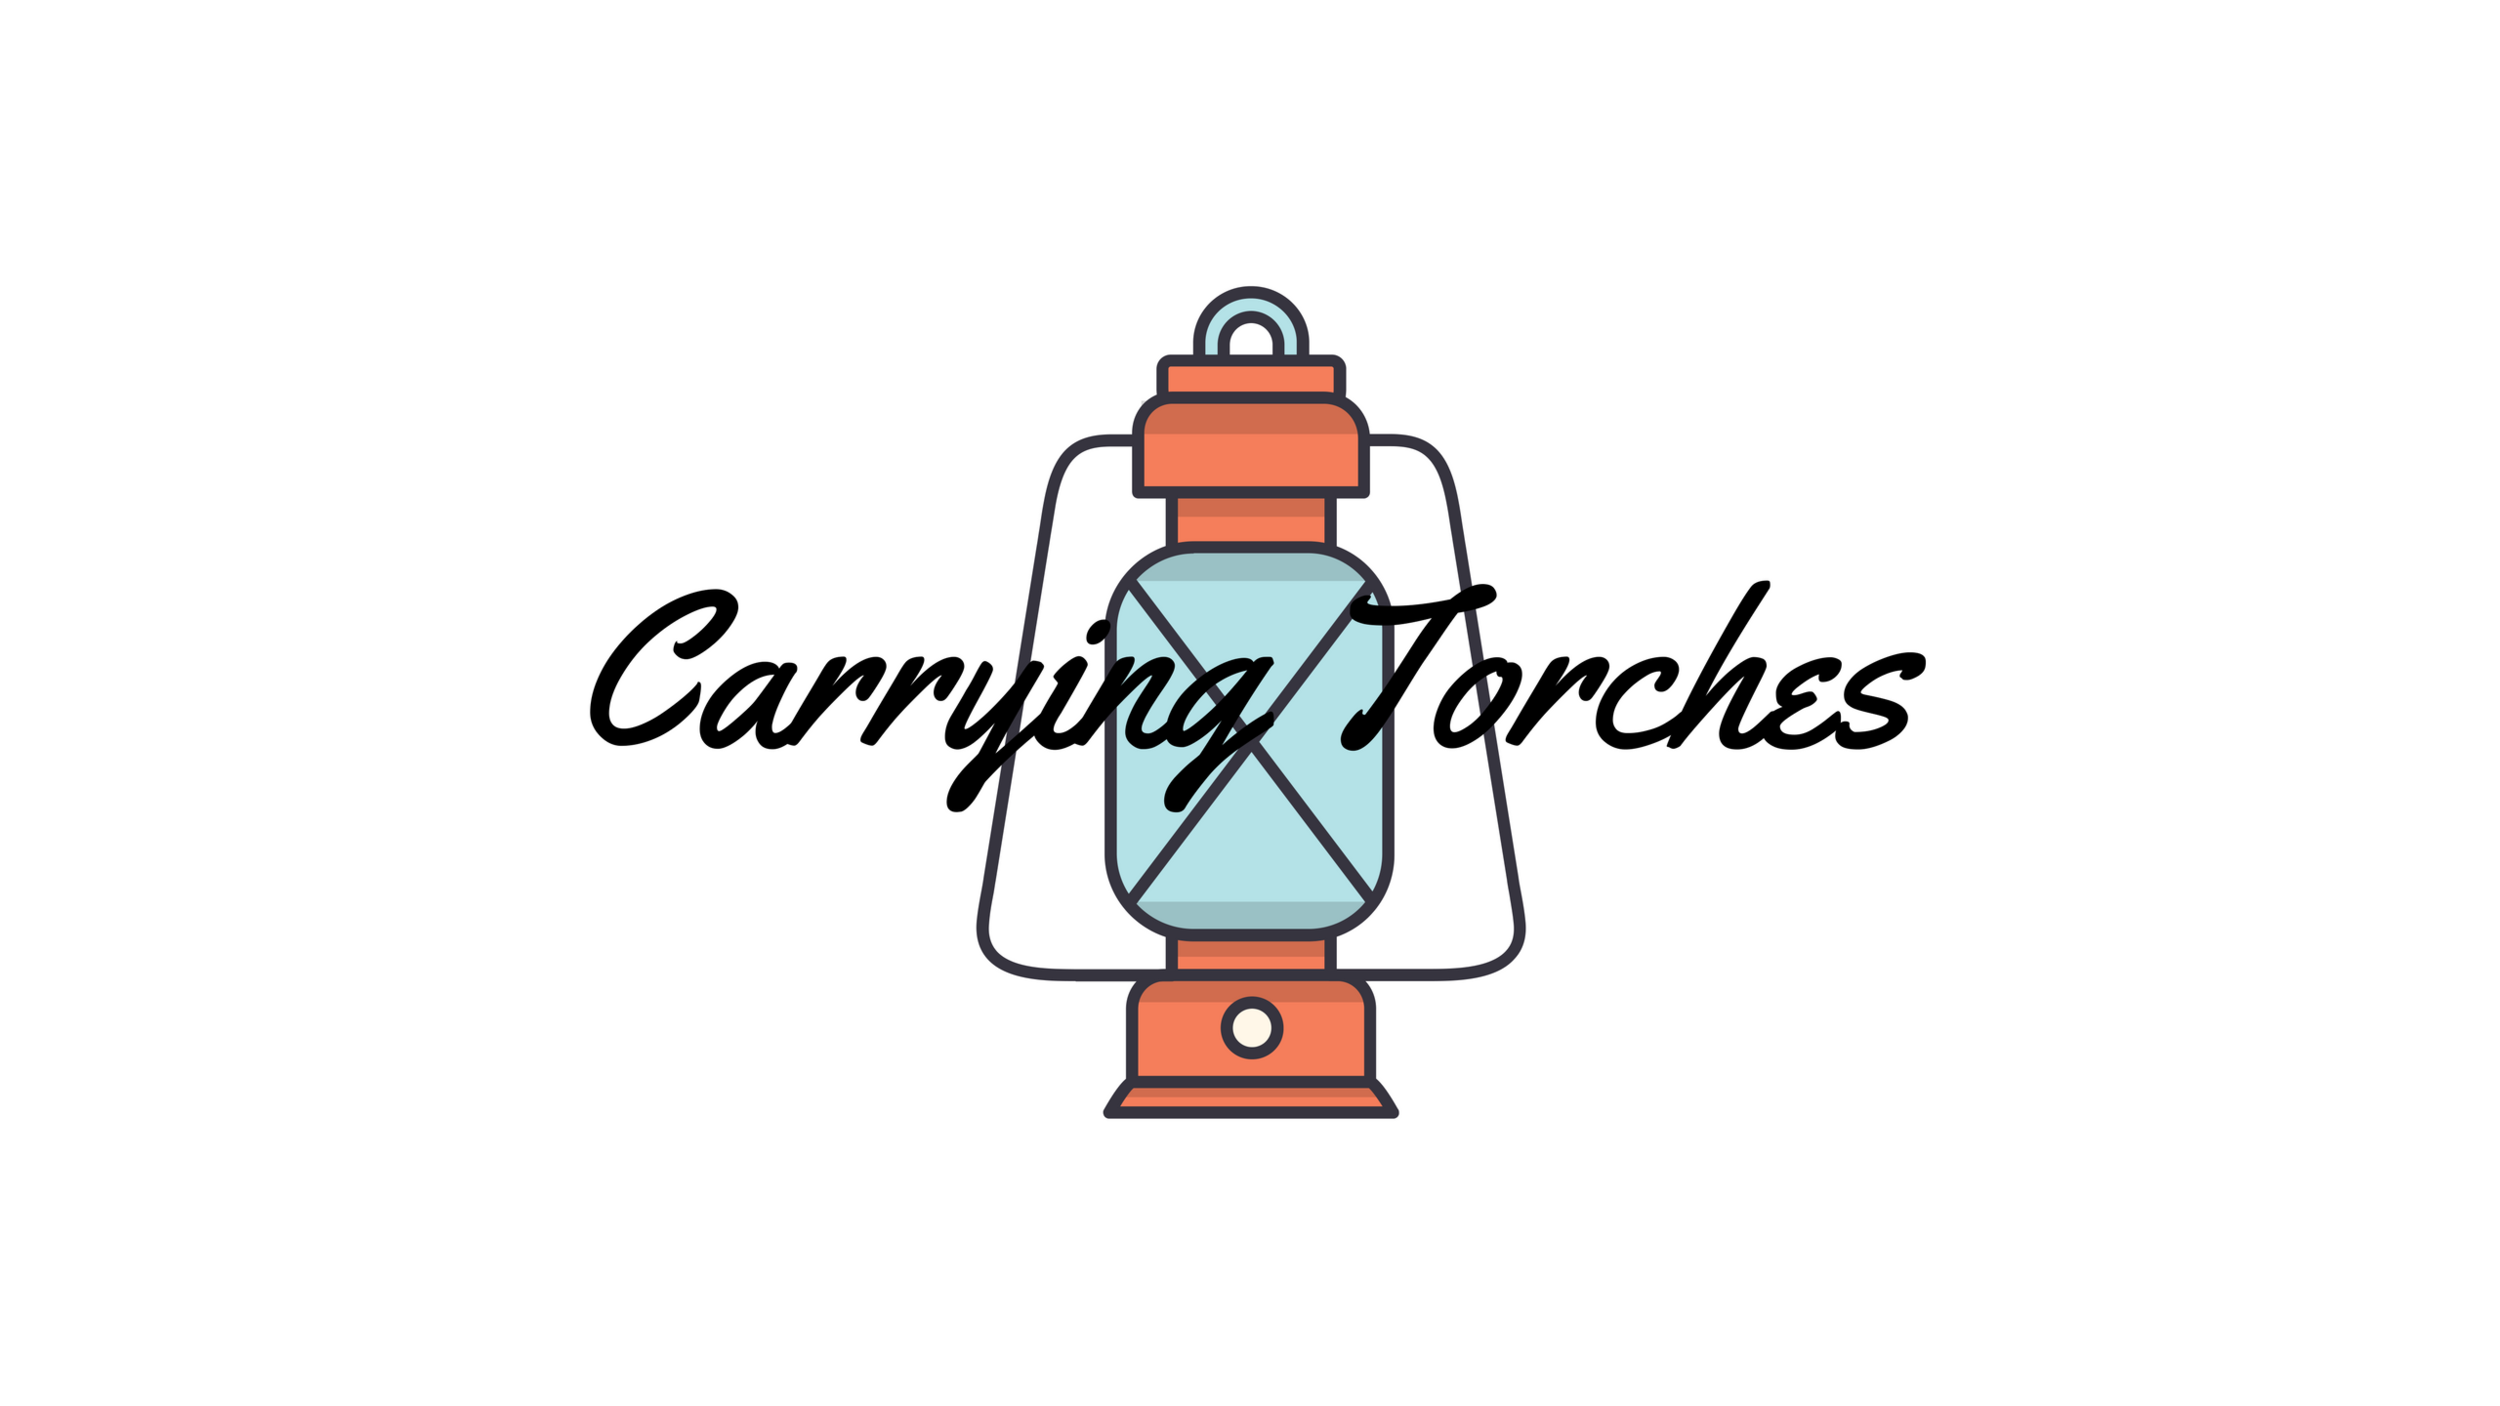 Carrying Torches (1).png